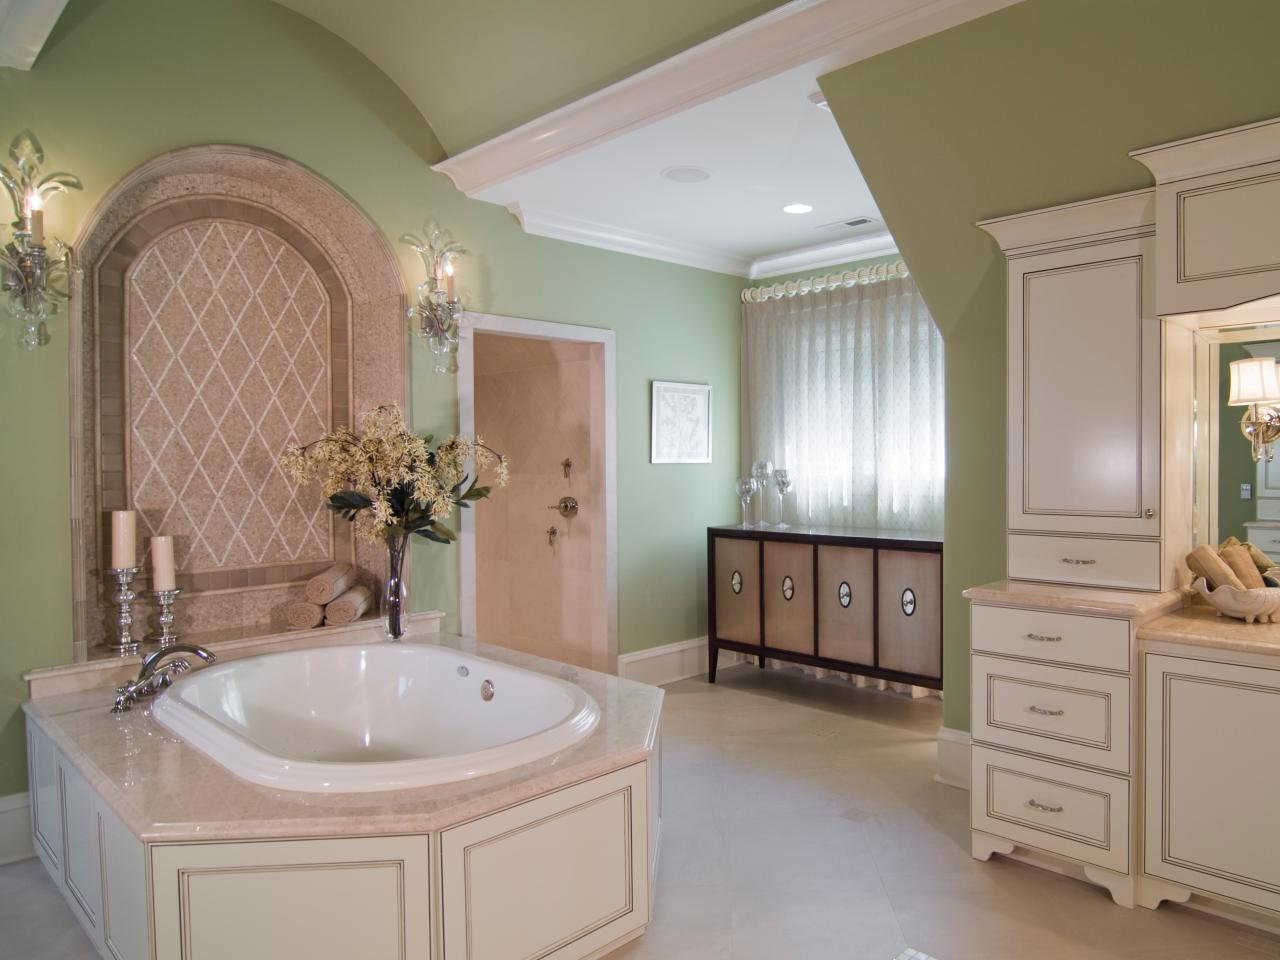 How to improve master bathroom designs in better way for Interior design bathroom images